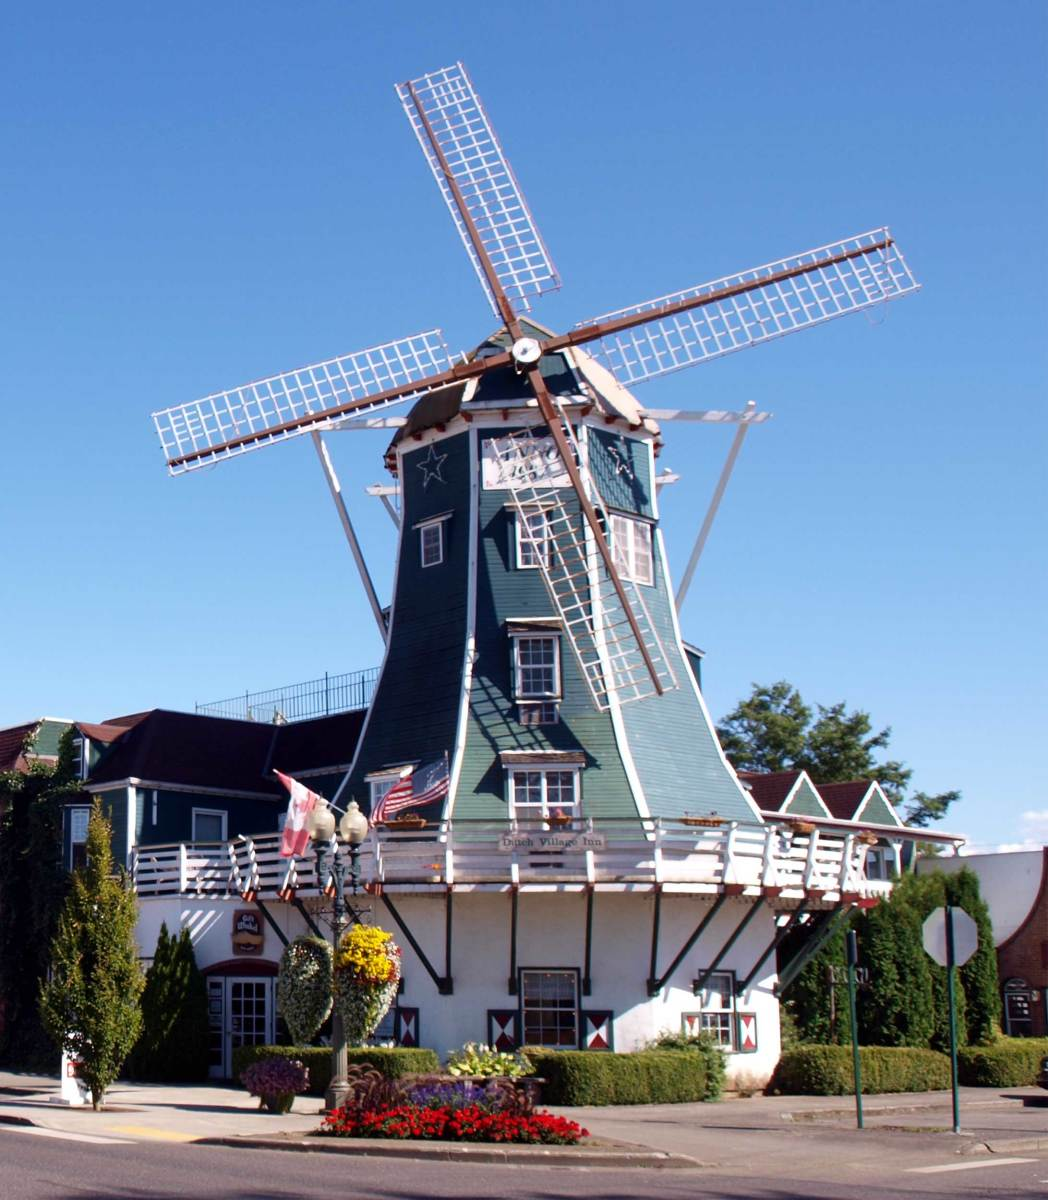 Lynden, Washington, A Quaint Dutch Town in the Pacific Northwest